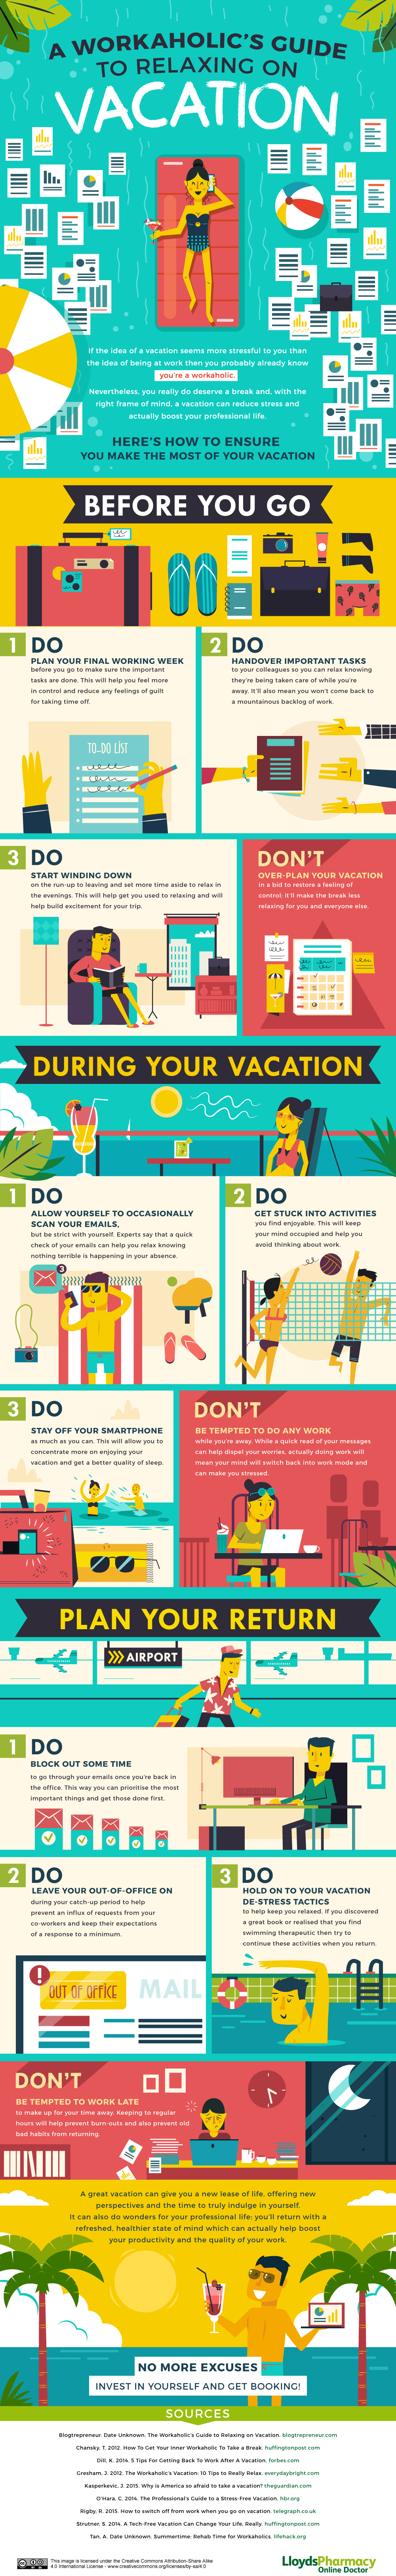 A Workaholics Guide to Relaxing on Vacation